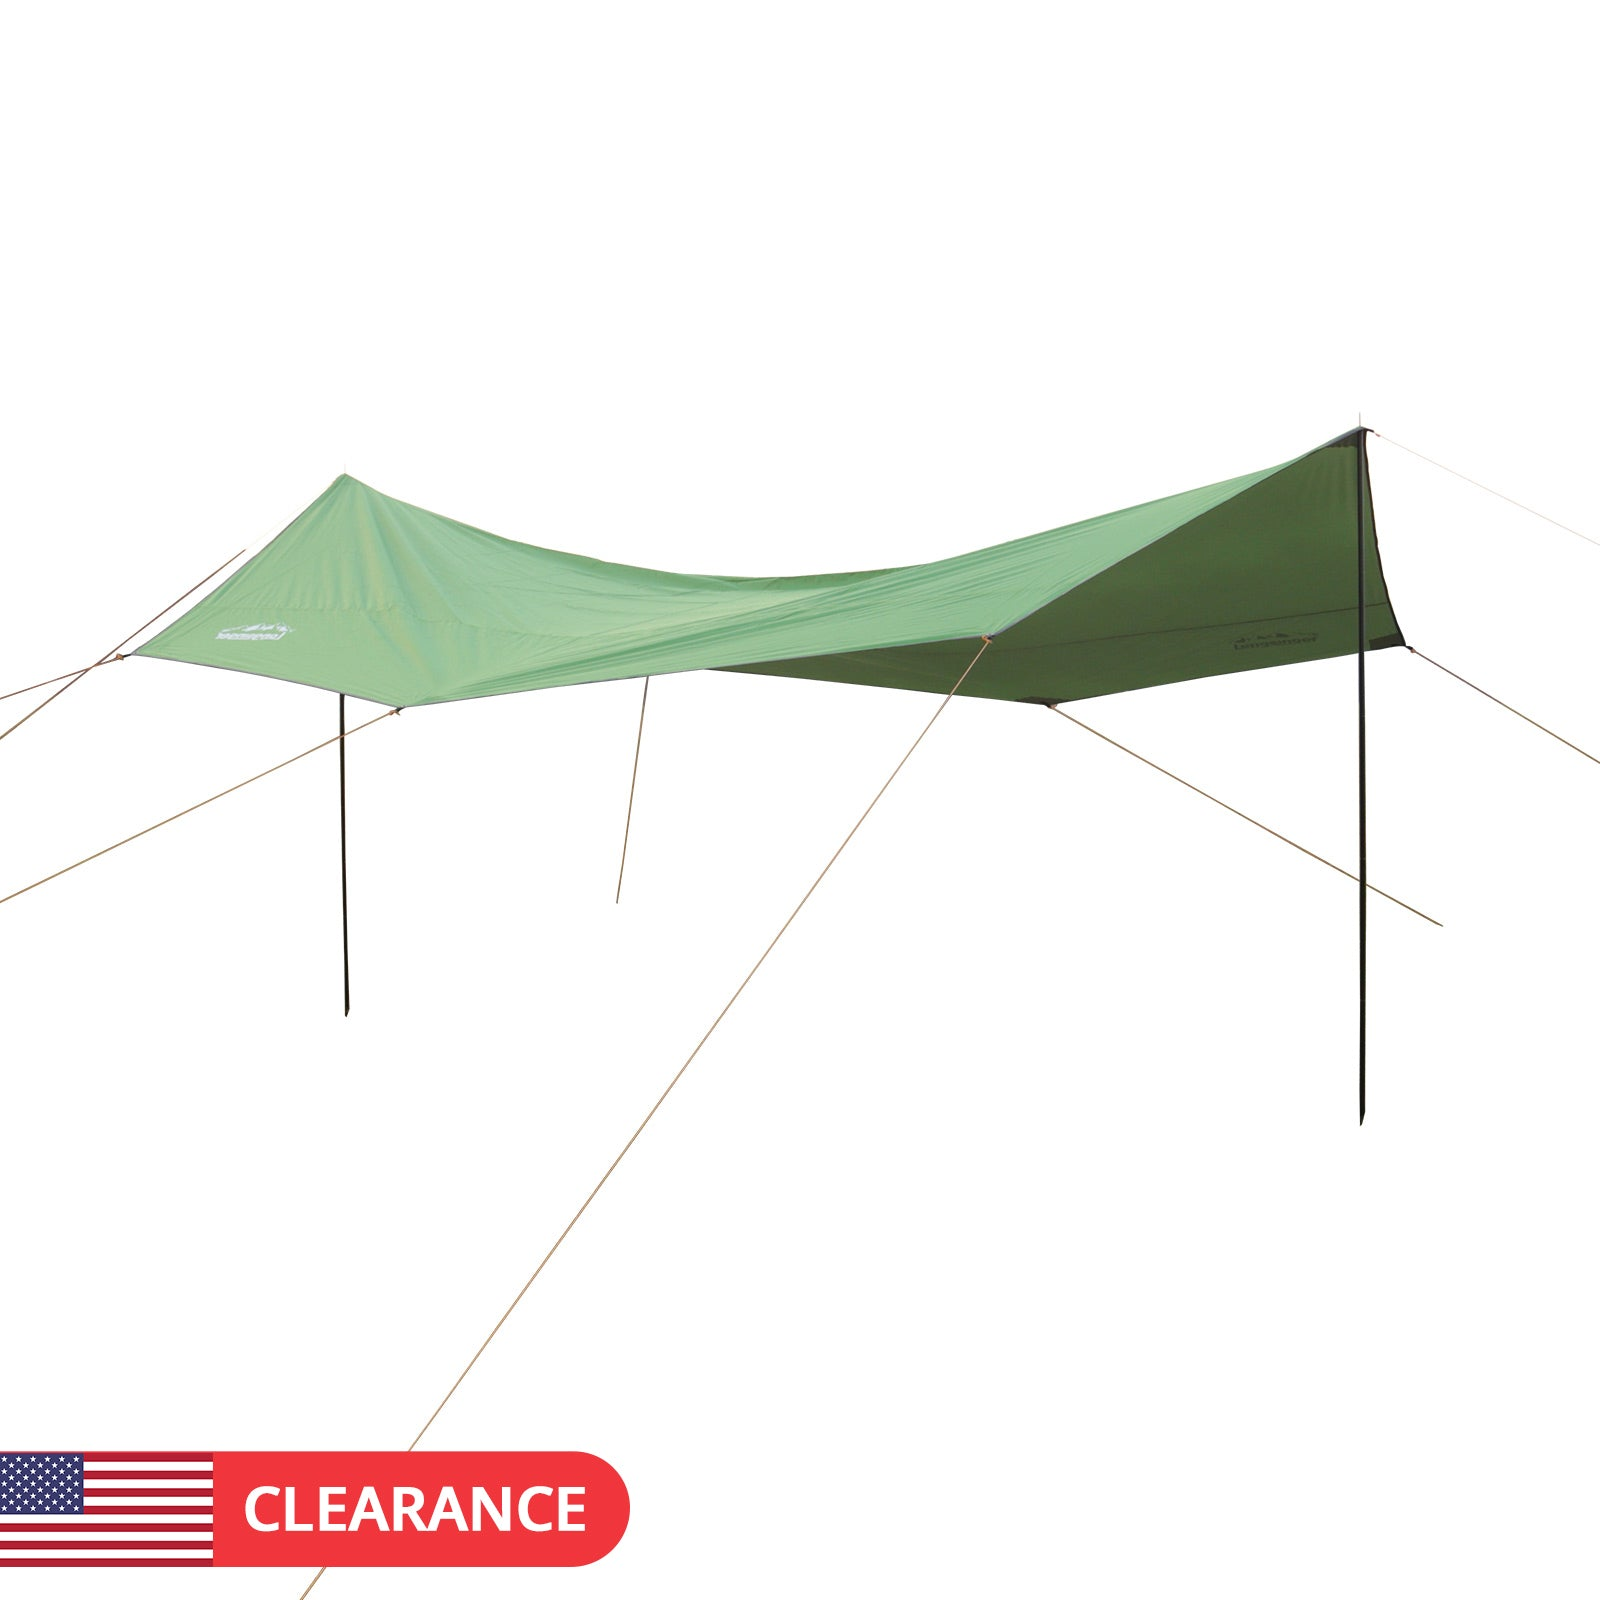 Portable Outdoor Tent Pole Awning Rod for Camping Backpacking Canopy Tarp AM